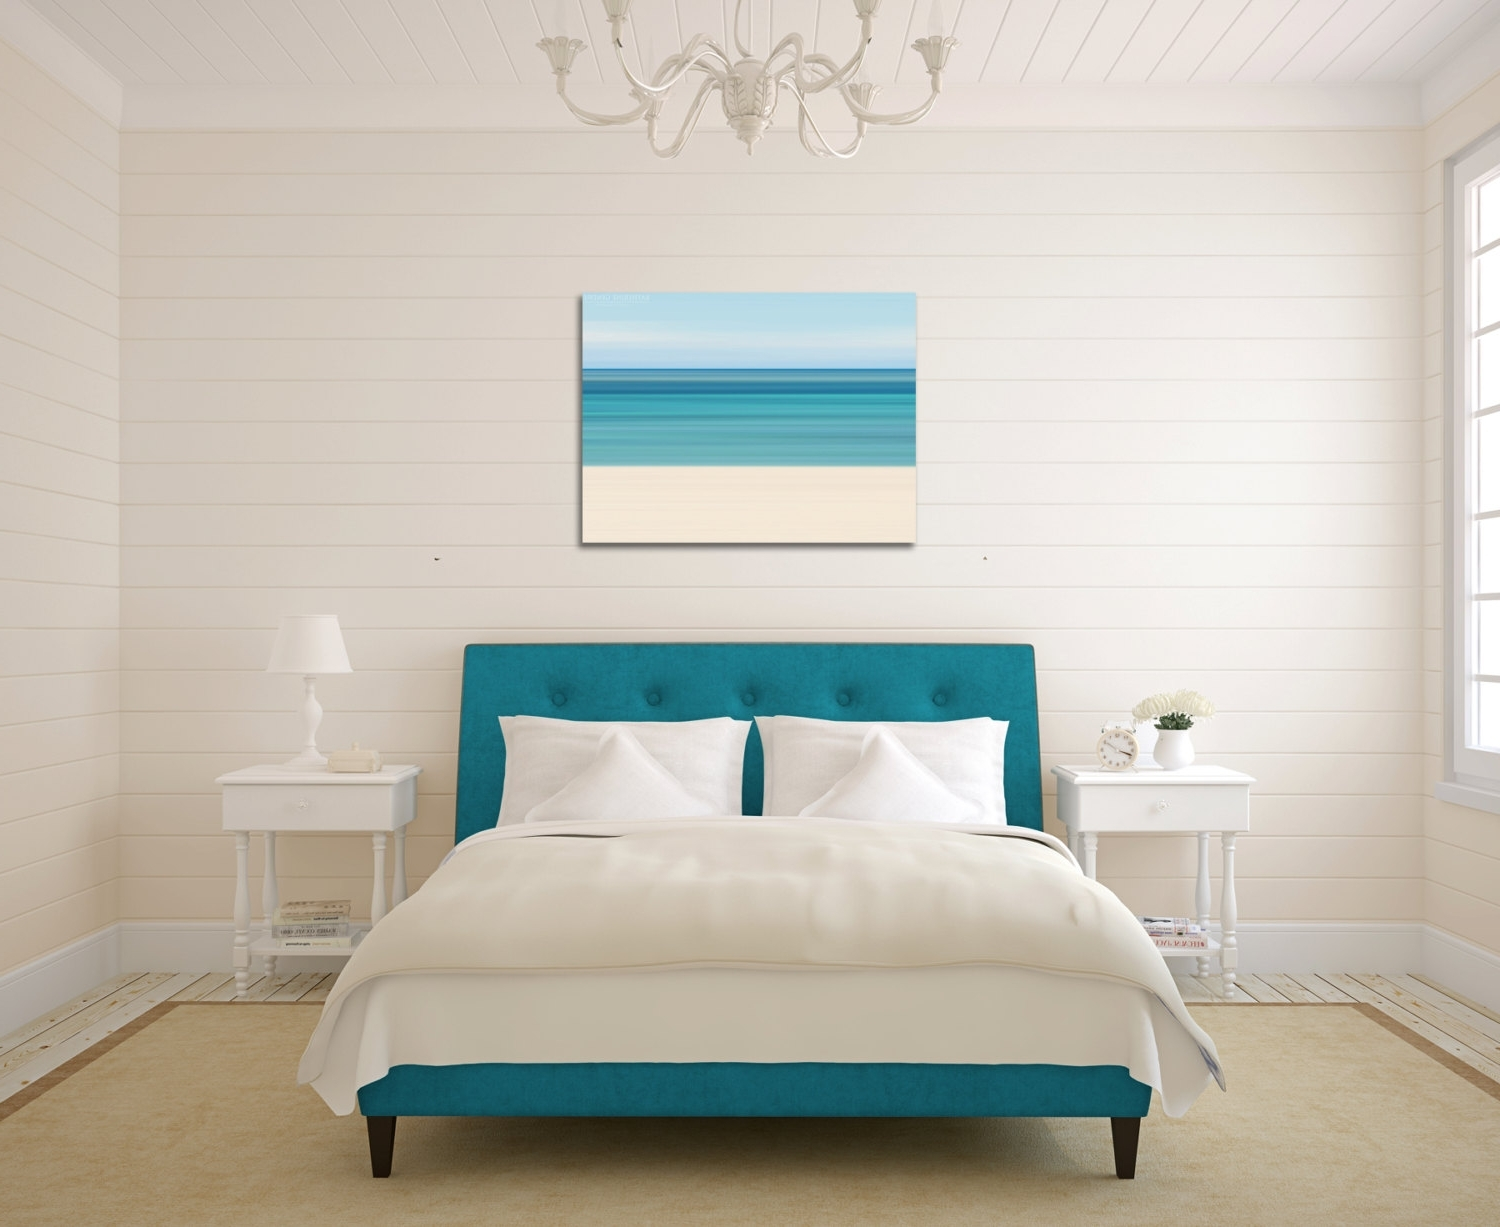 Trendy Beach Bedroom Wall Art – Run For The Comfortable Bedroom Wall Art With Beach Wall Art For Bedroom (View 2 of 15)